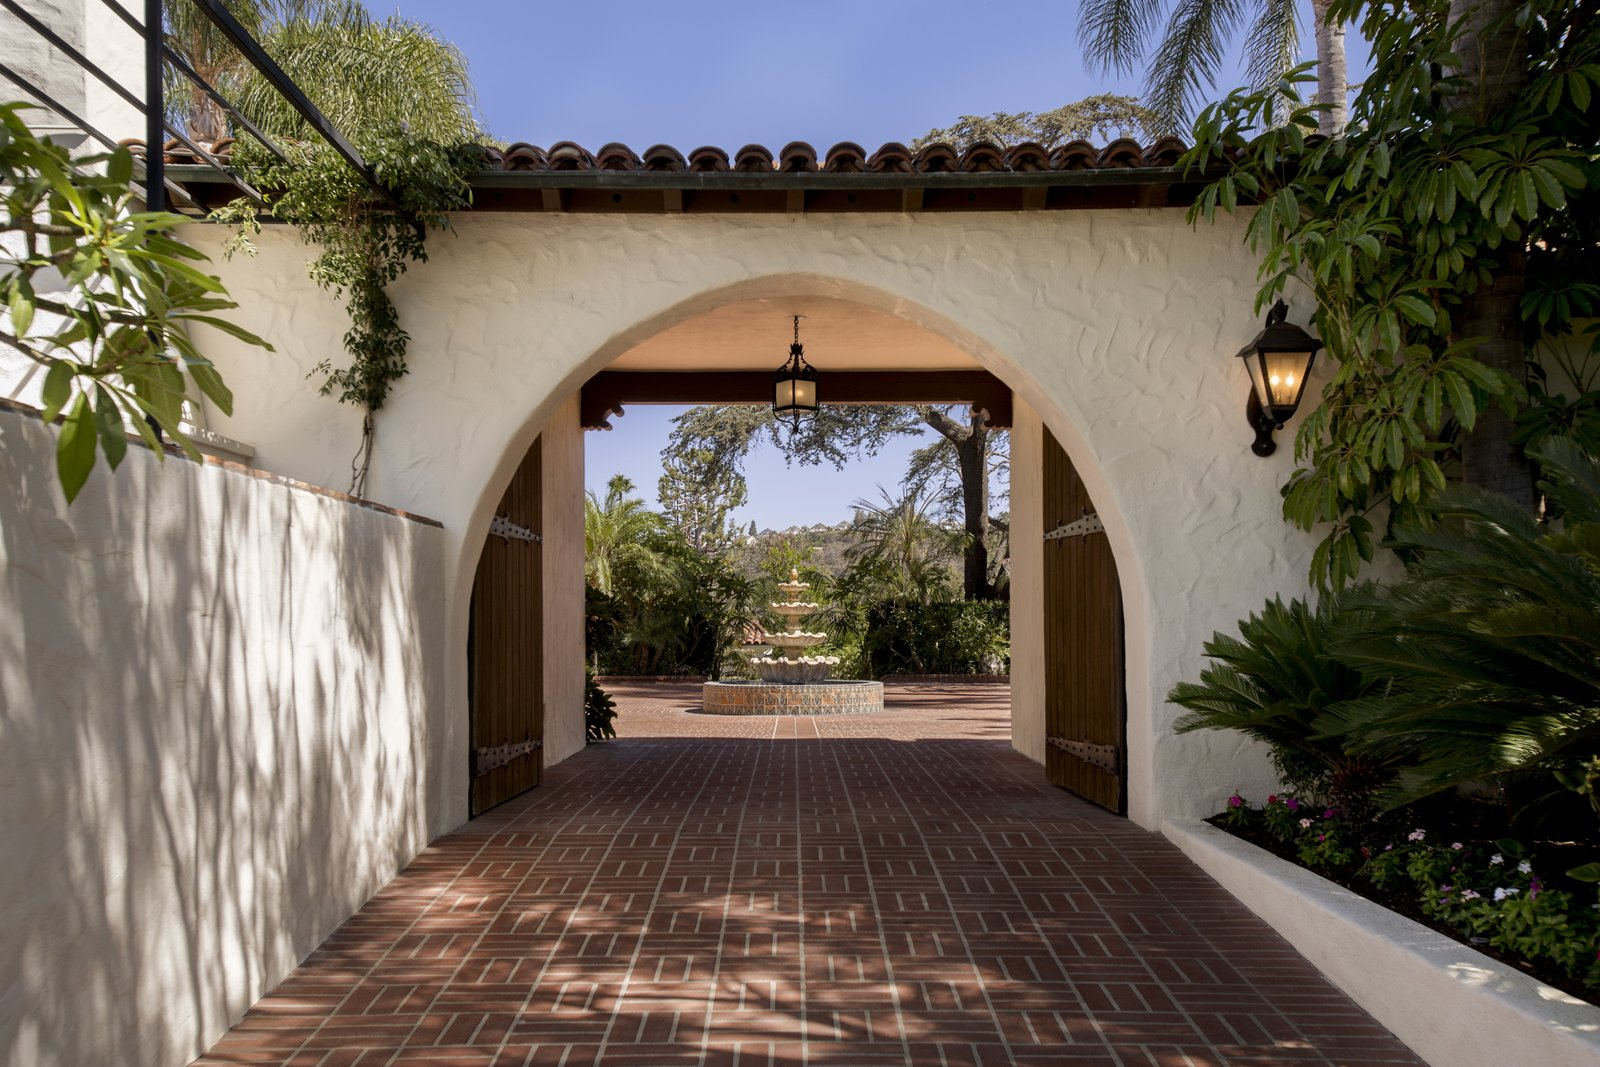 Historic charm abounds throughout the property with terracotta tiled arches and white stucco walls.  Photo 2 of 9 in Just Listed at $4M, This Spanish Colonial Revival in Southern California Promises Resort-Like Living